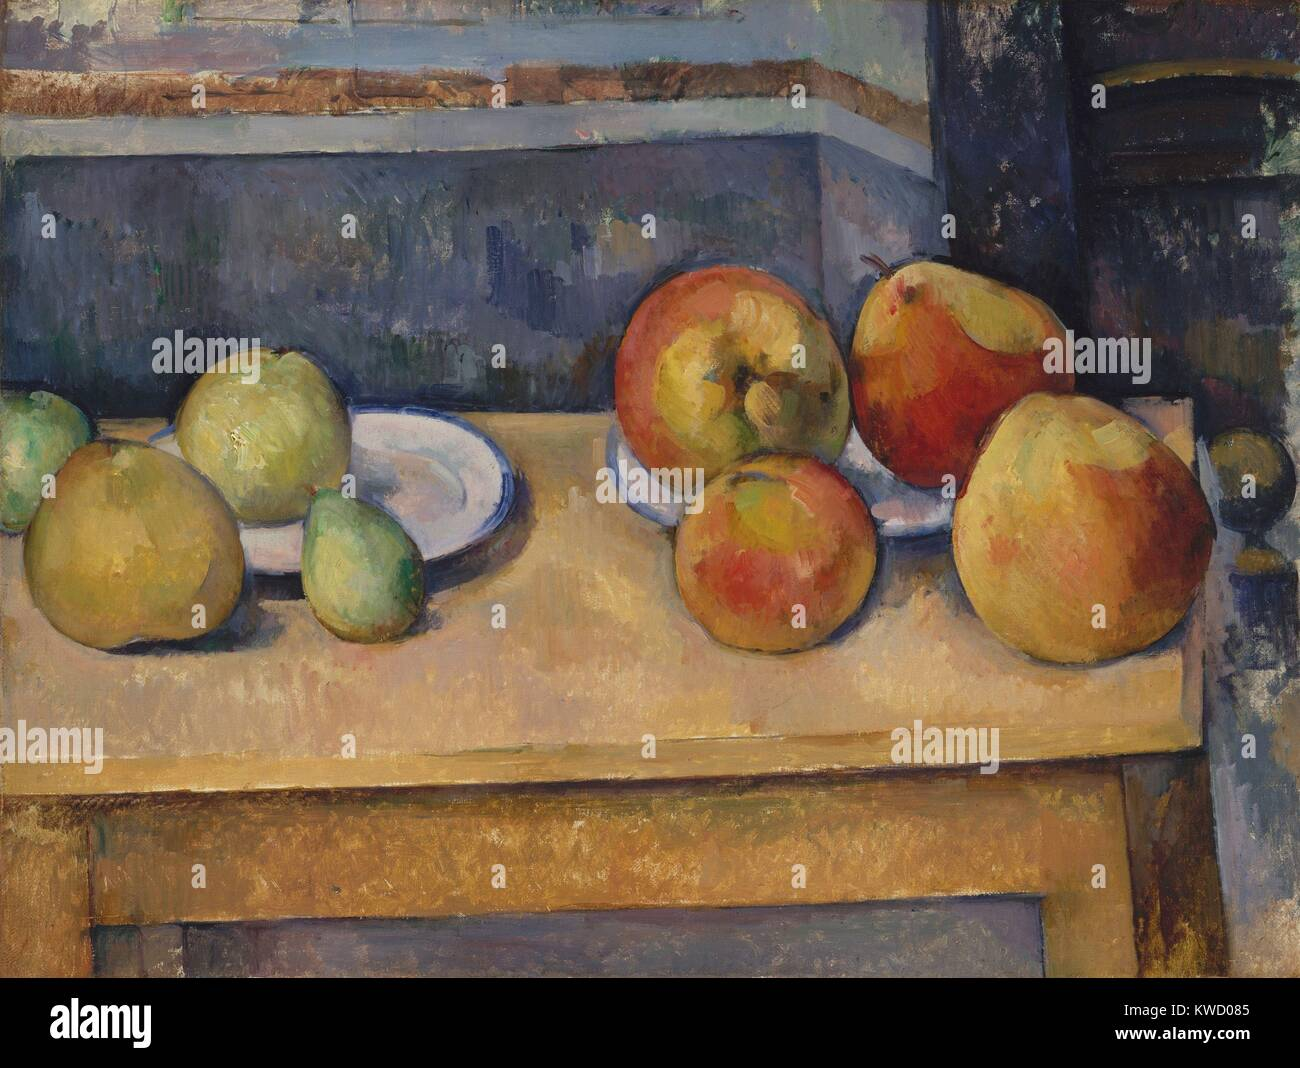 Still Life with Apples and Pears, by Paul Cezanne, 1891-92, French Post-Impressionist oil painting. The physical - Stock Image